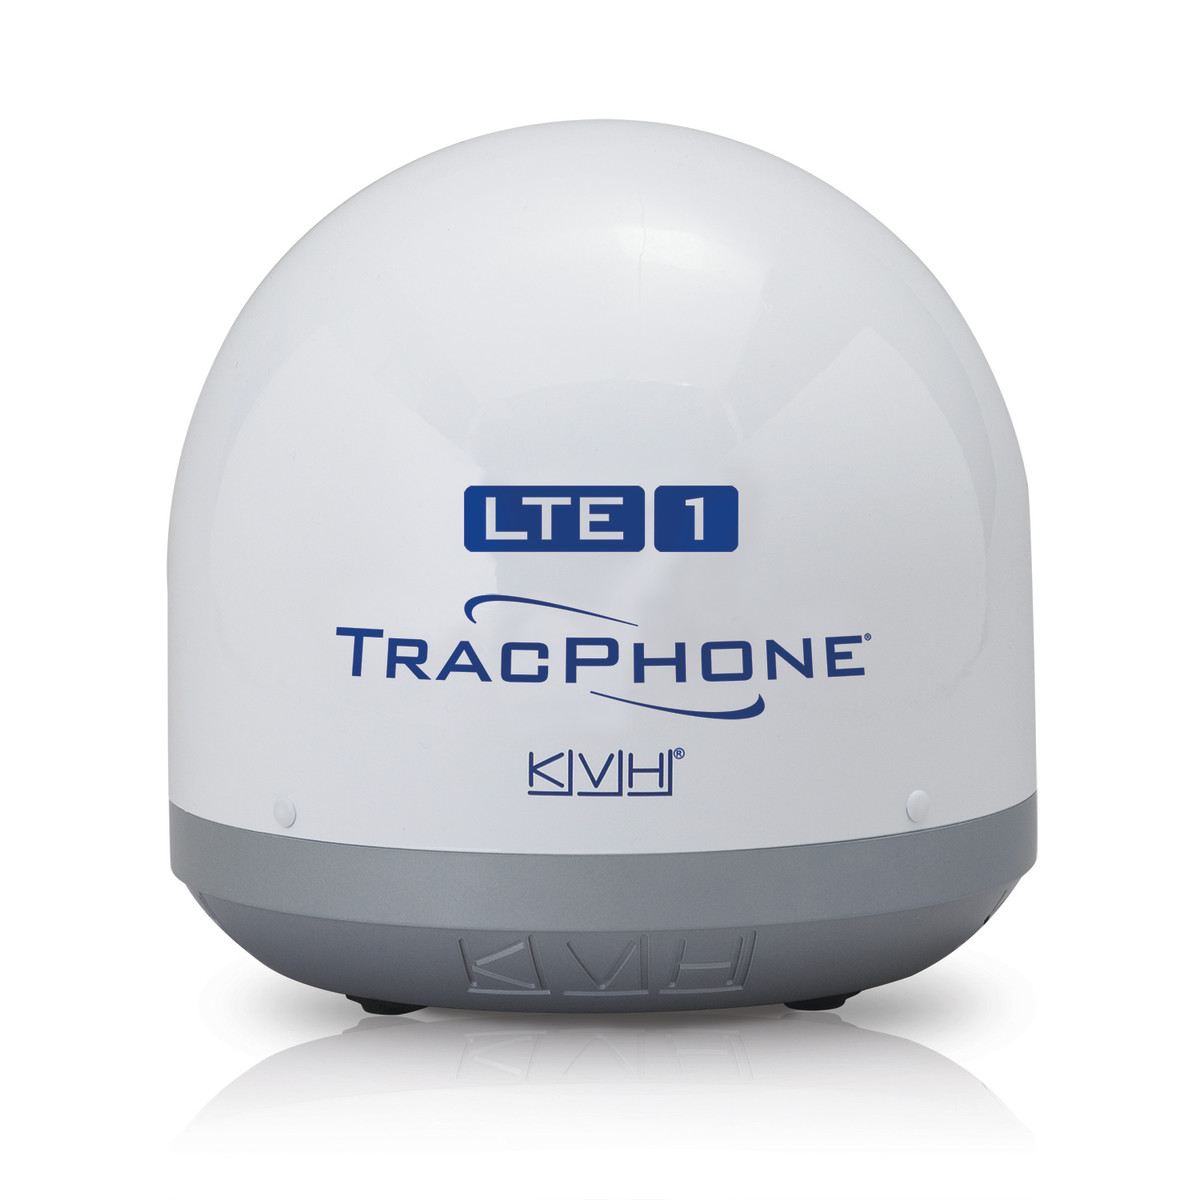 KVH's TracPhone LTE-1 marine communications system provides connectivity up to 20 miles offshore.